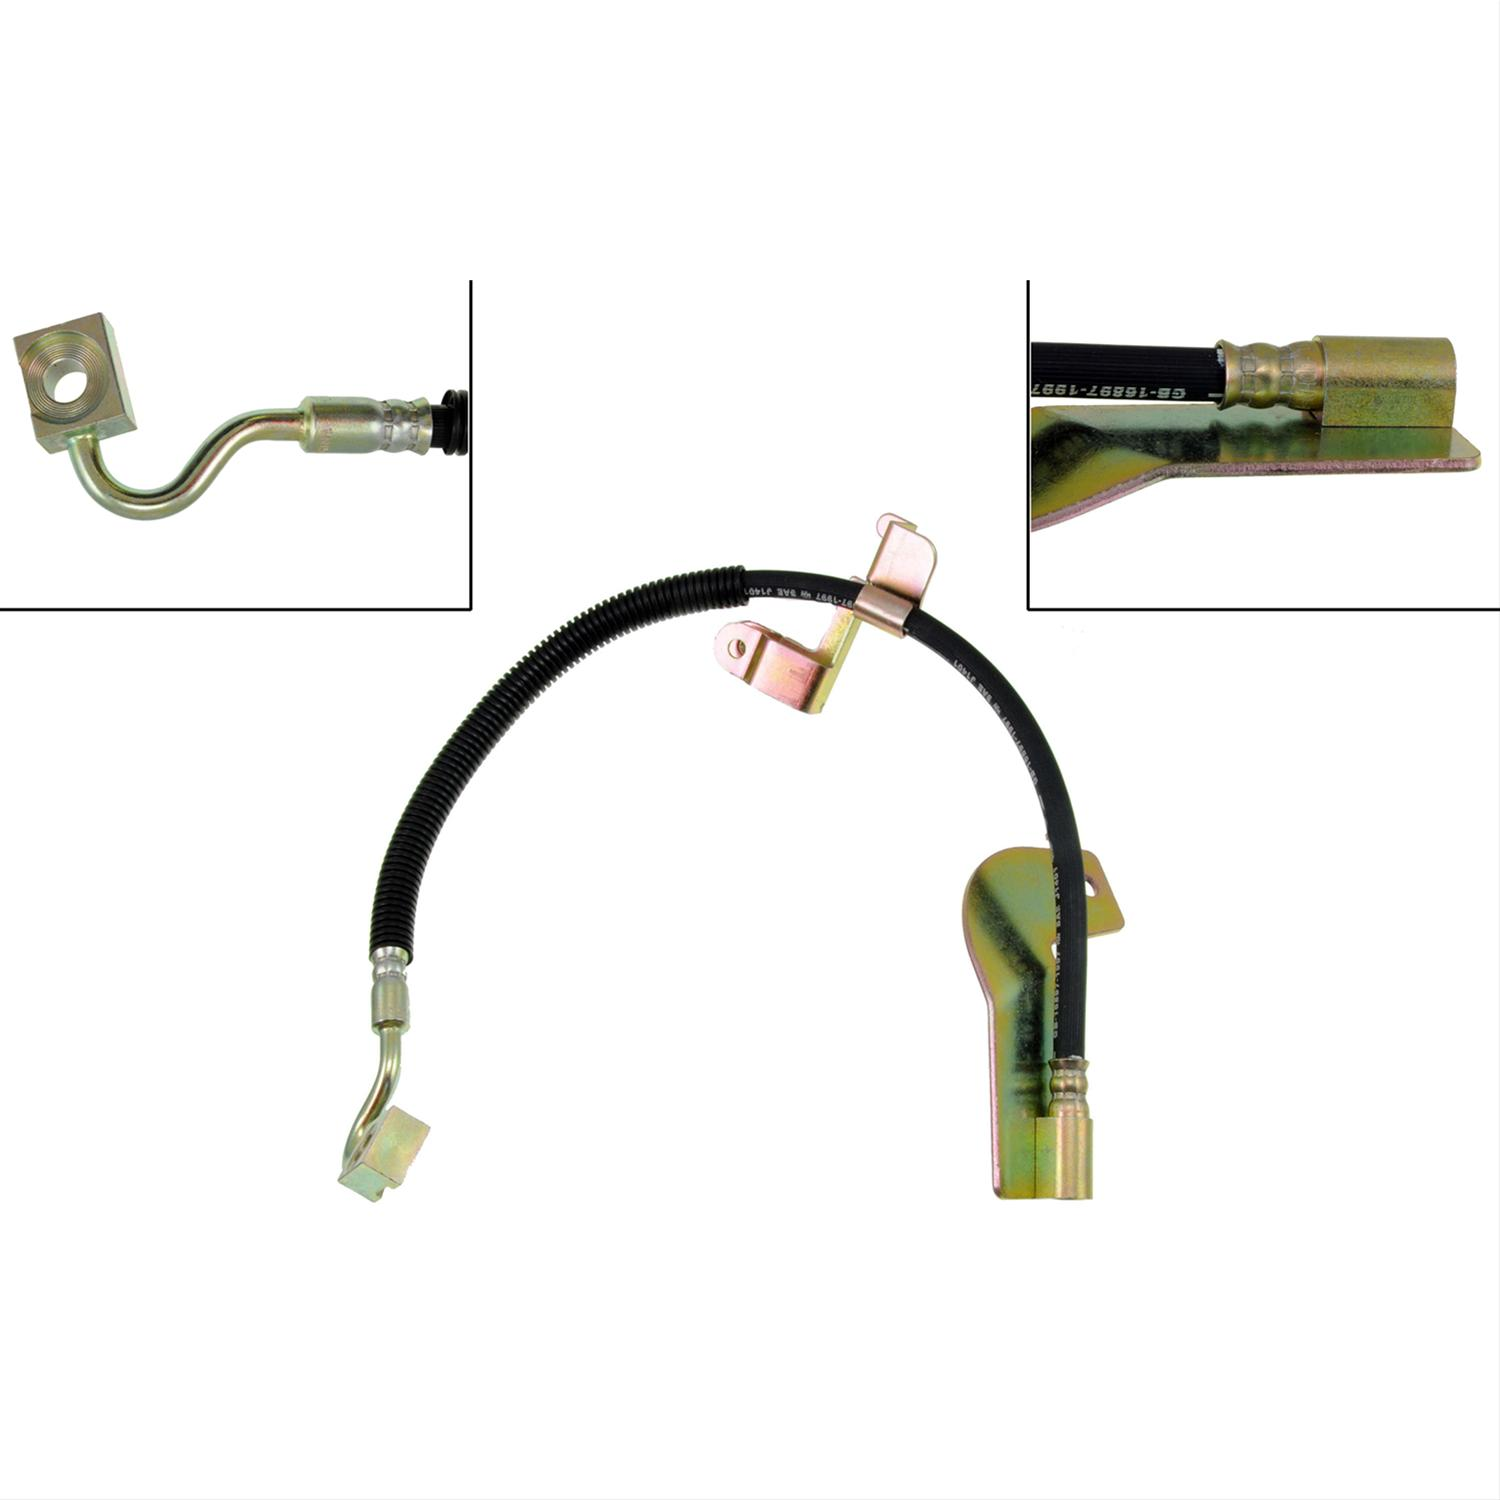 Hoses Dorman H381309 Hydraulic Brake Hose Replacement Parts